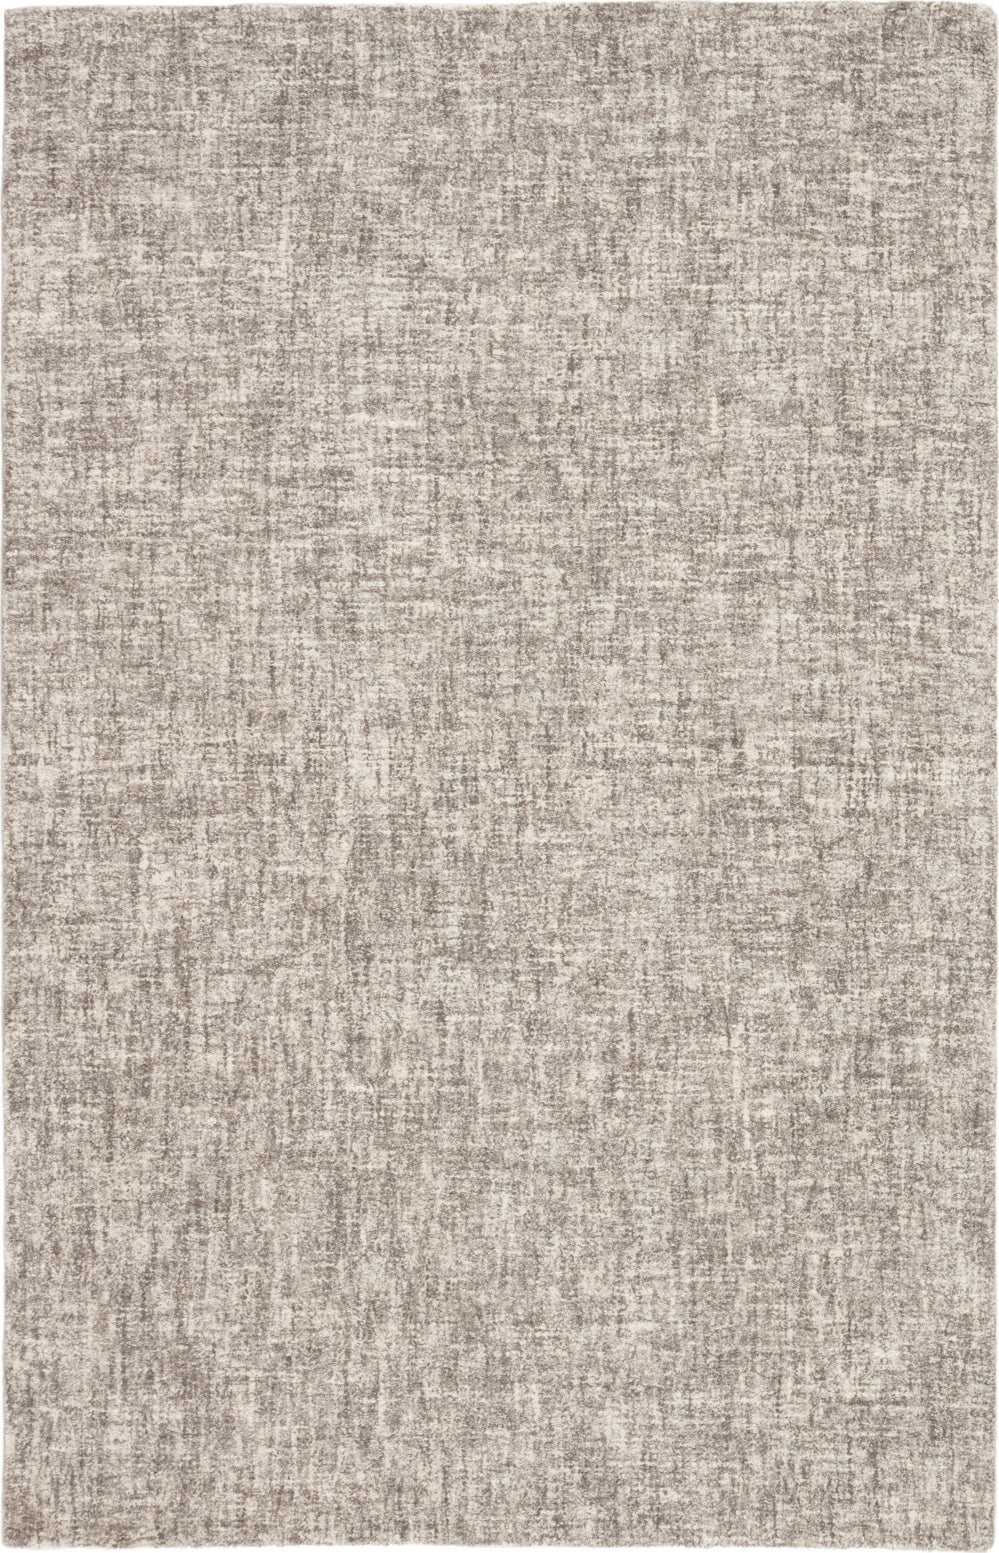 Jaipur Living Britta Plus Brp09 Ivory Taupe Area Rug Incredible Rugs And Decor